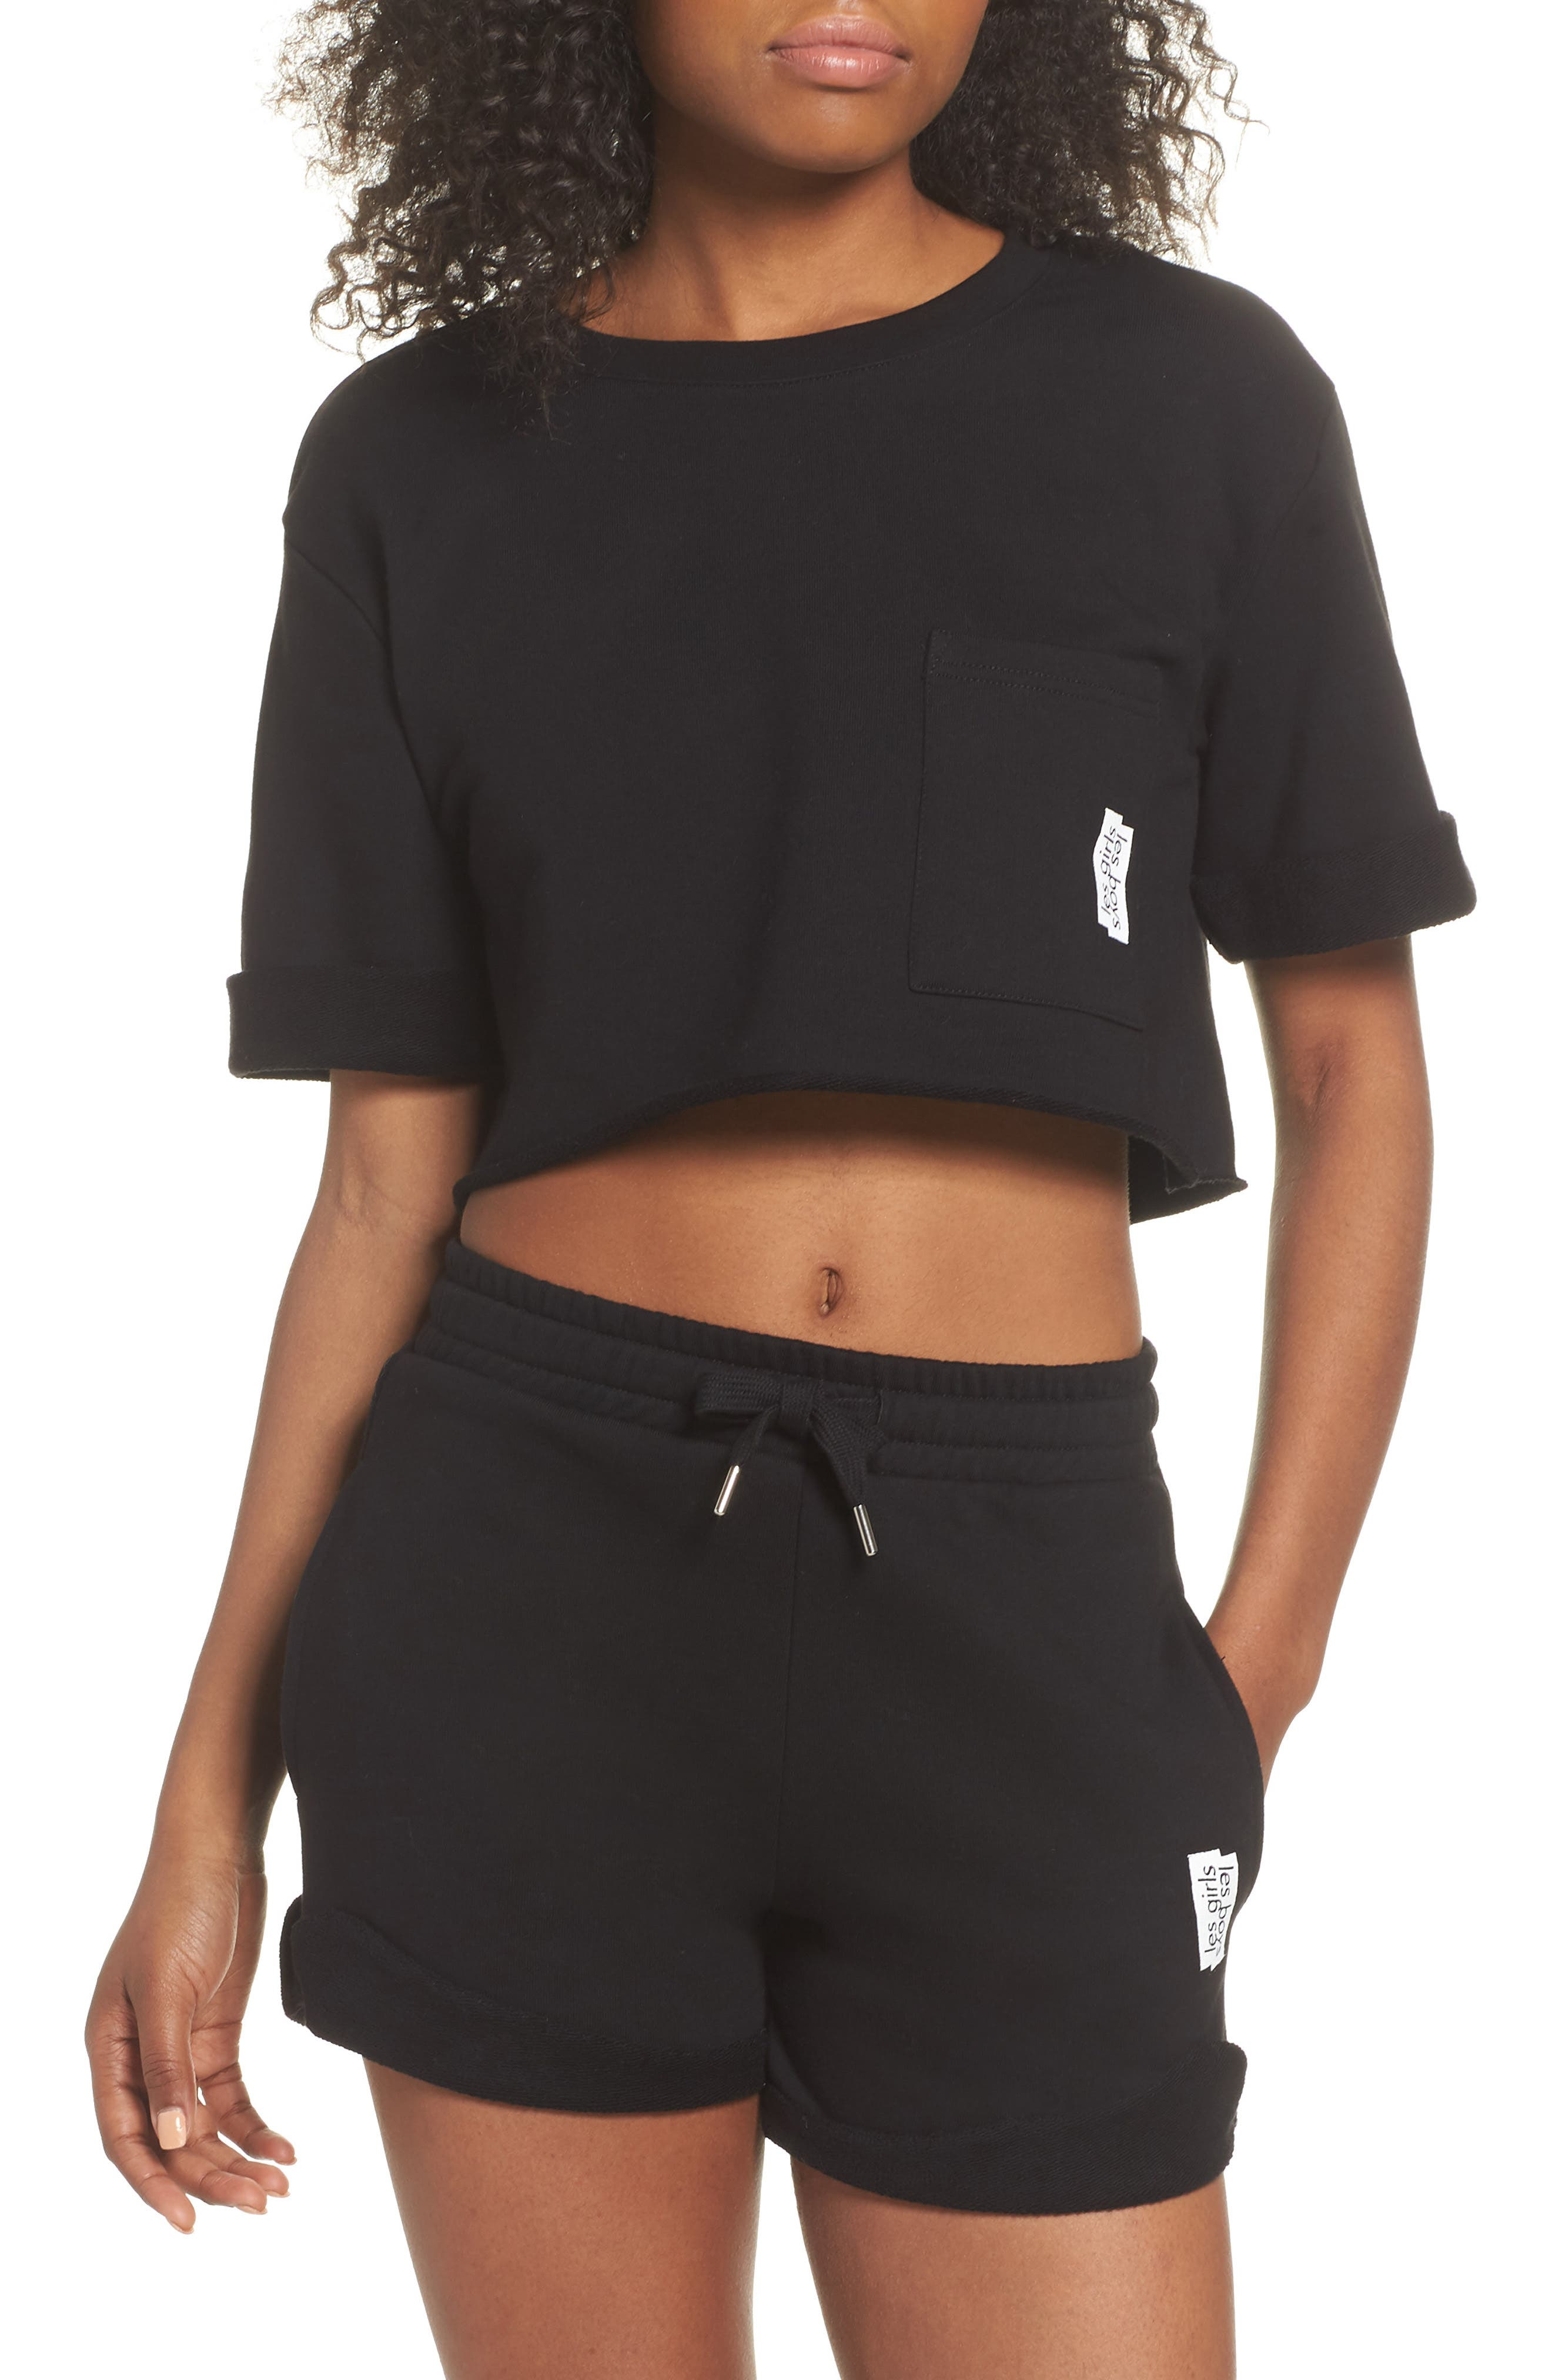 Les Girls Les Boys French Terry Crop Sweatshirt